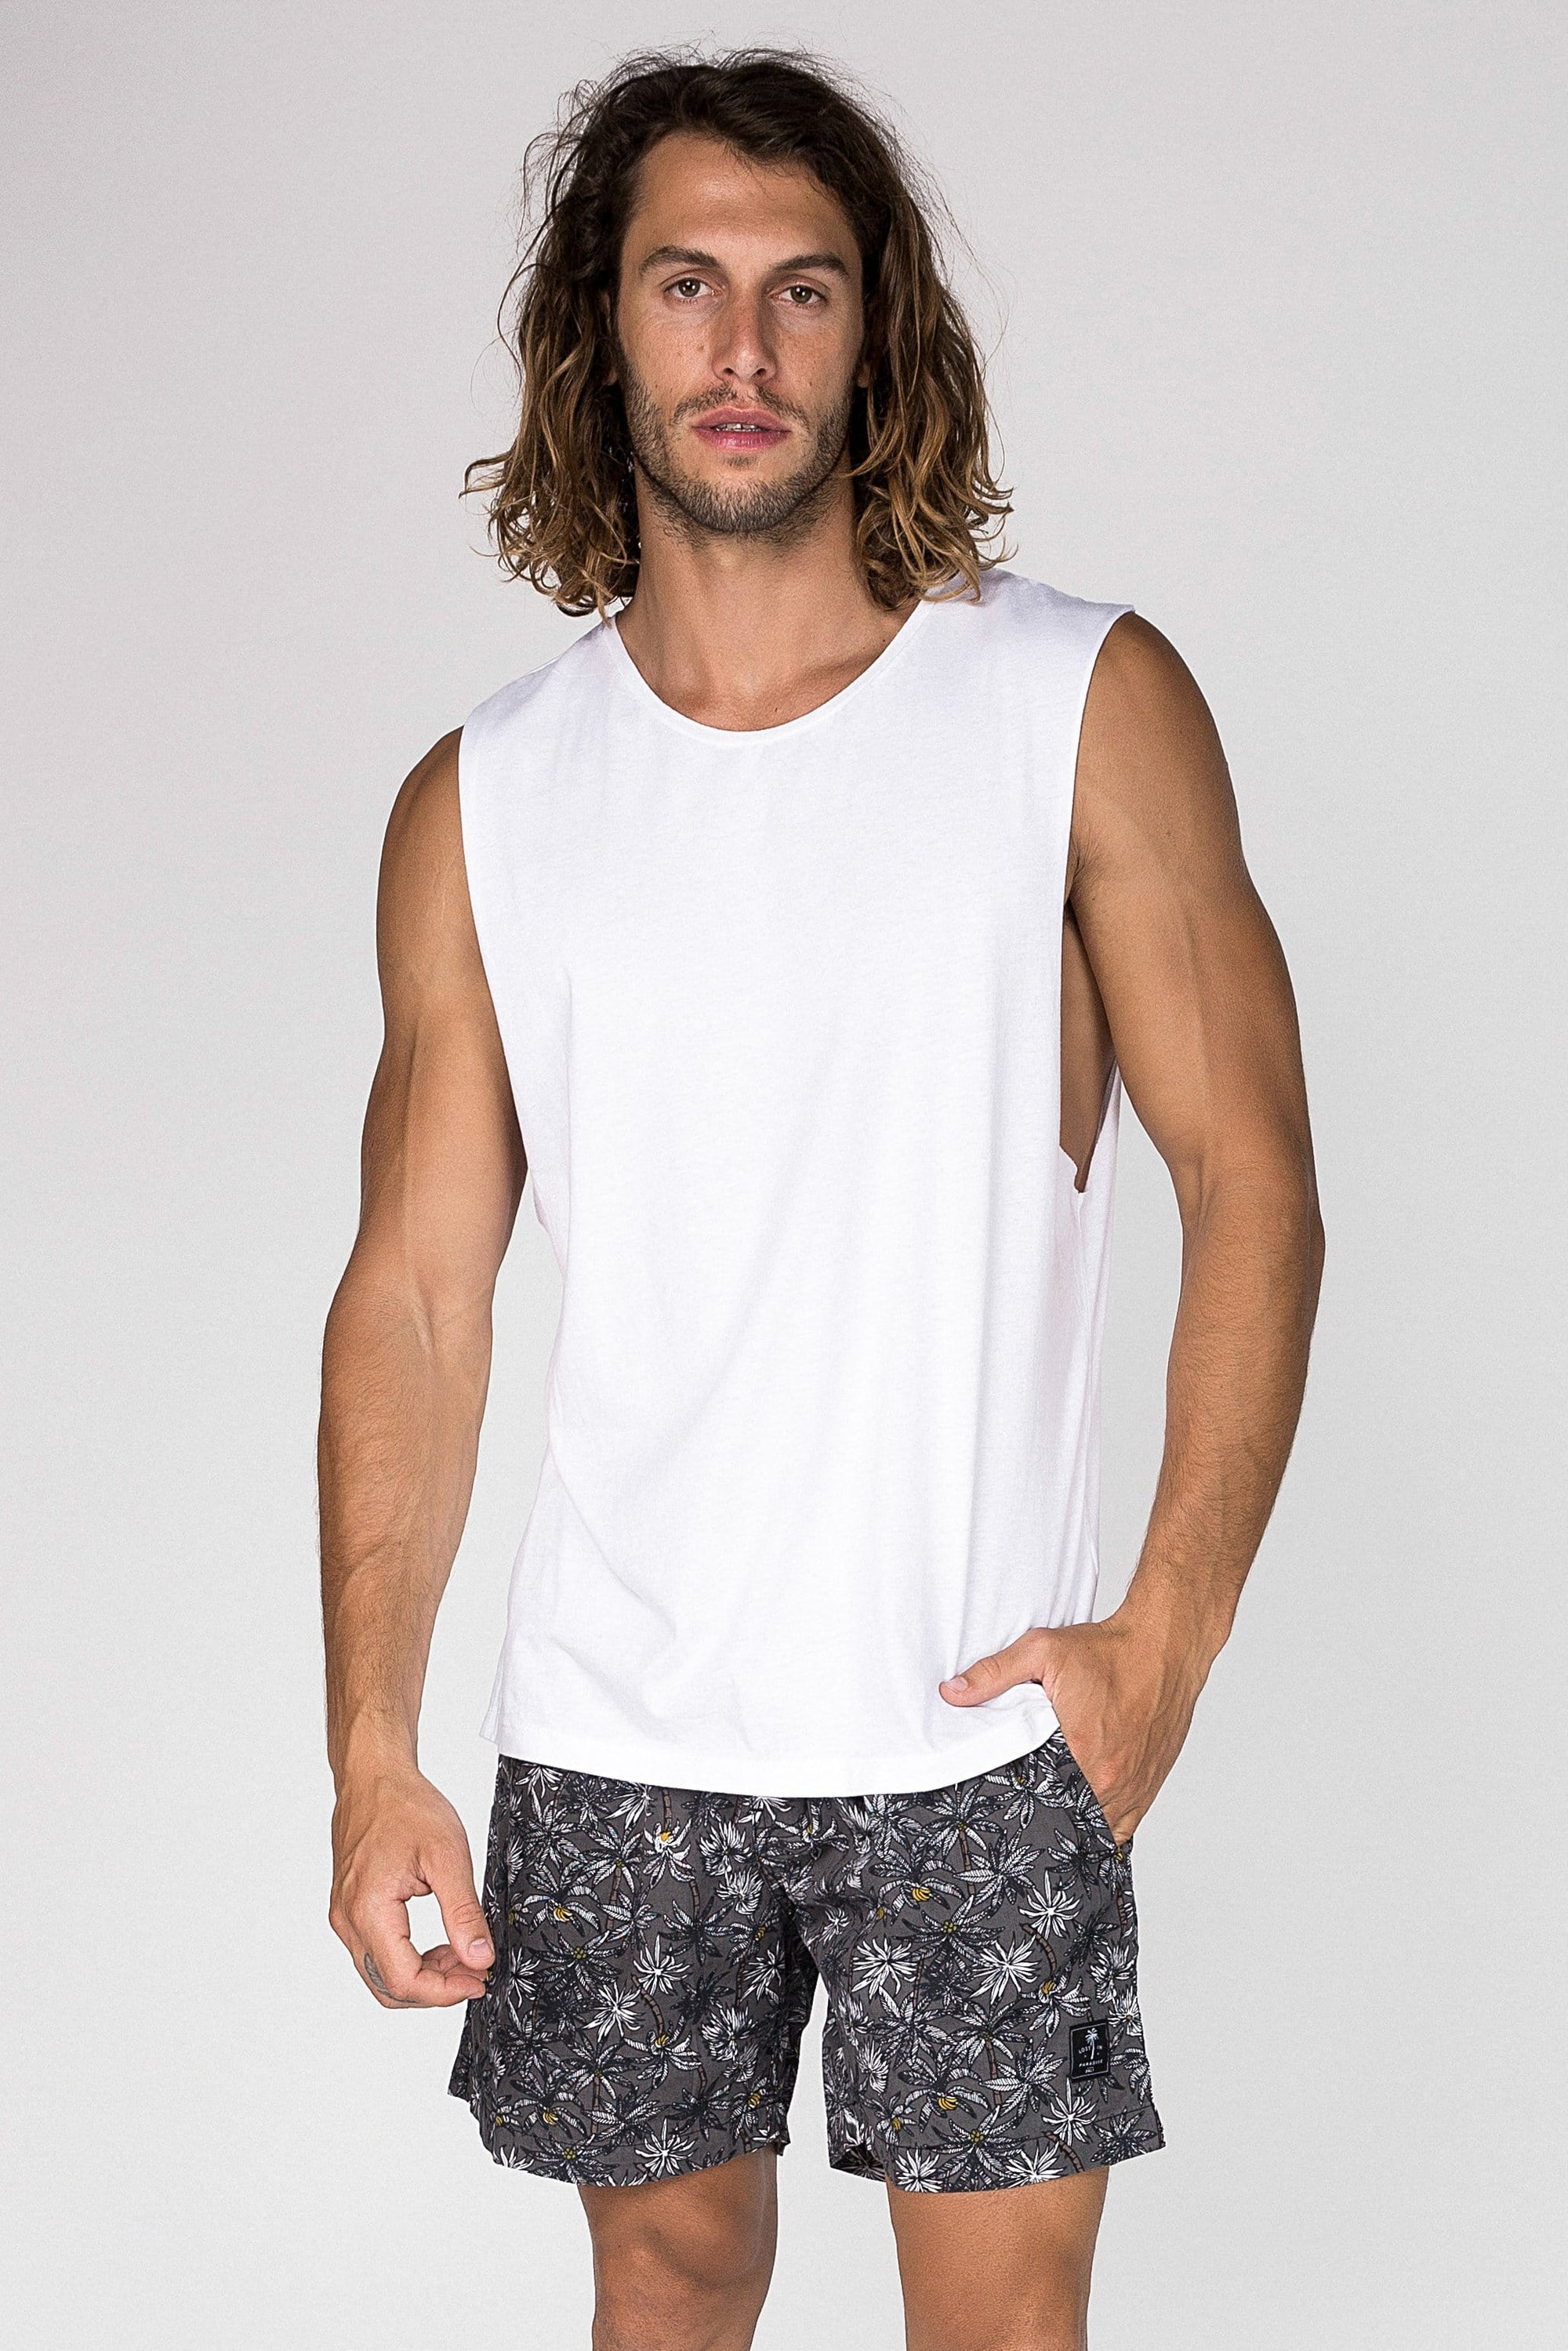 Sm Bali Paradise - Mens Muscle Tank - LOST IN PARADISE